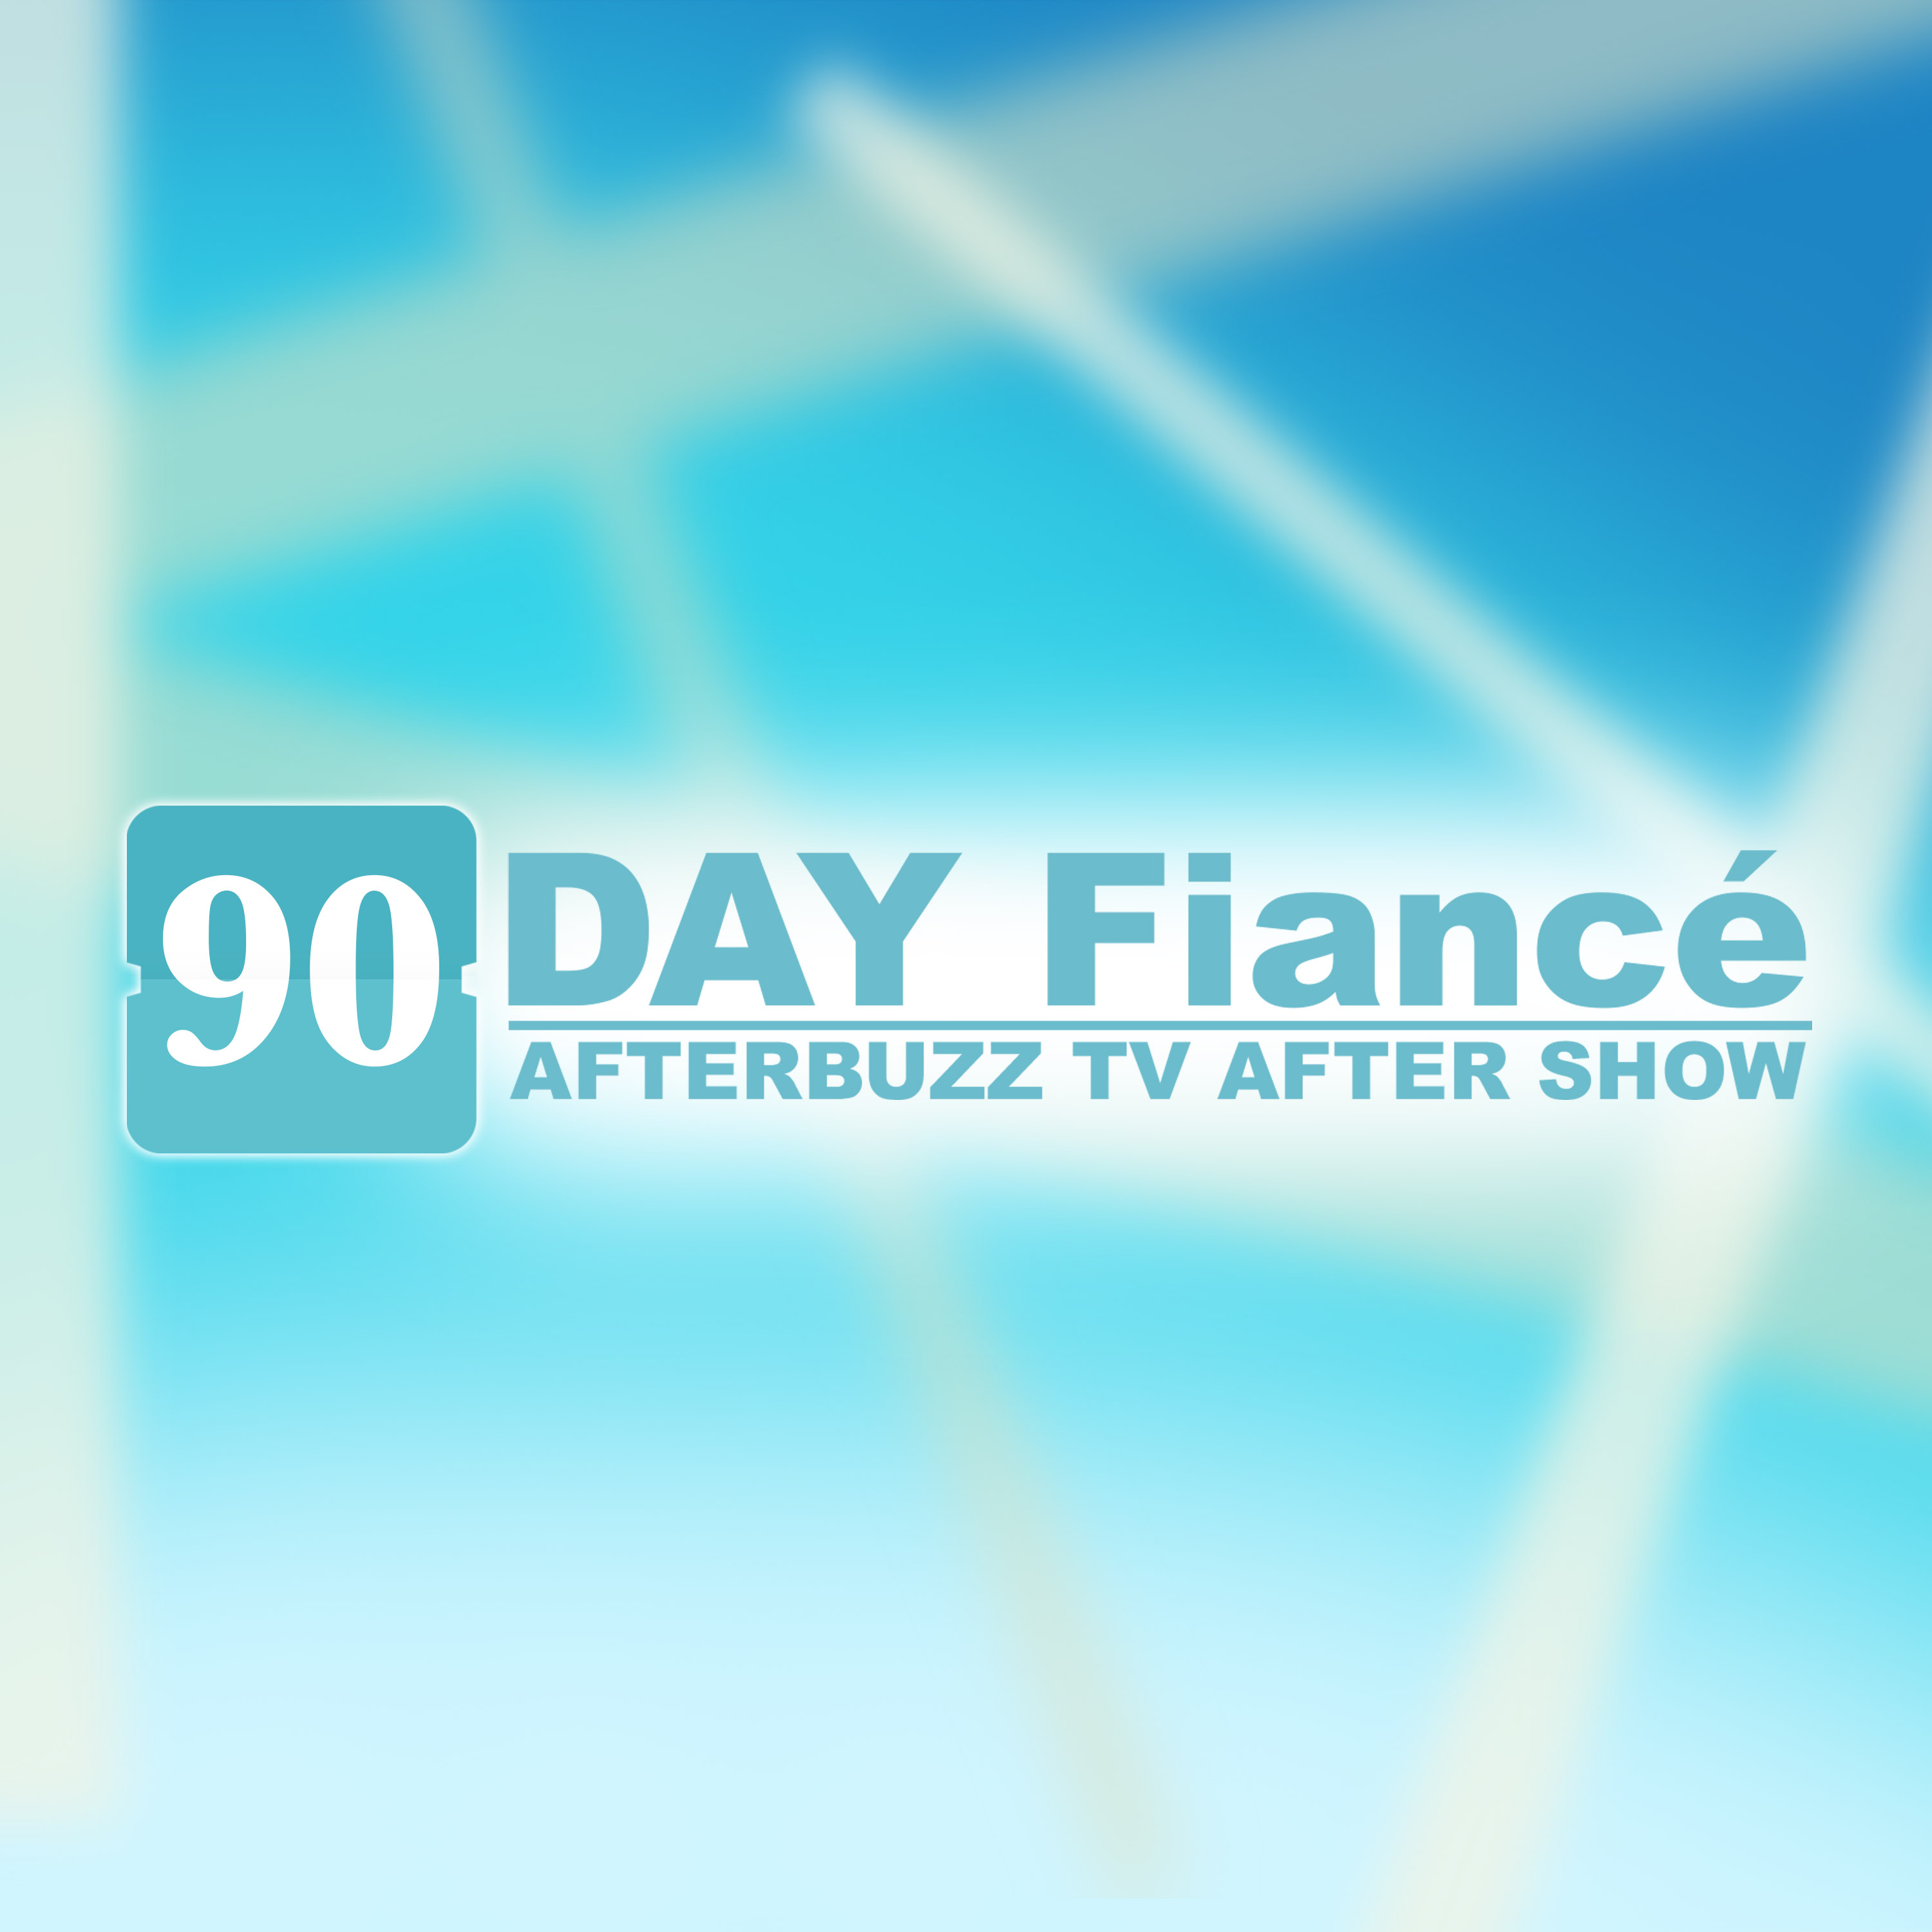 90 Day Fiance After Show